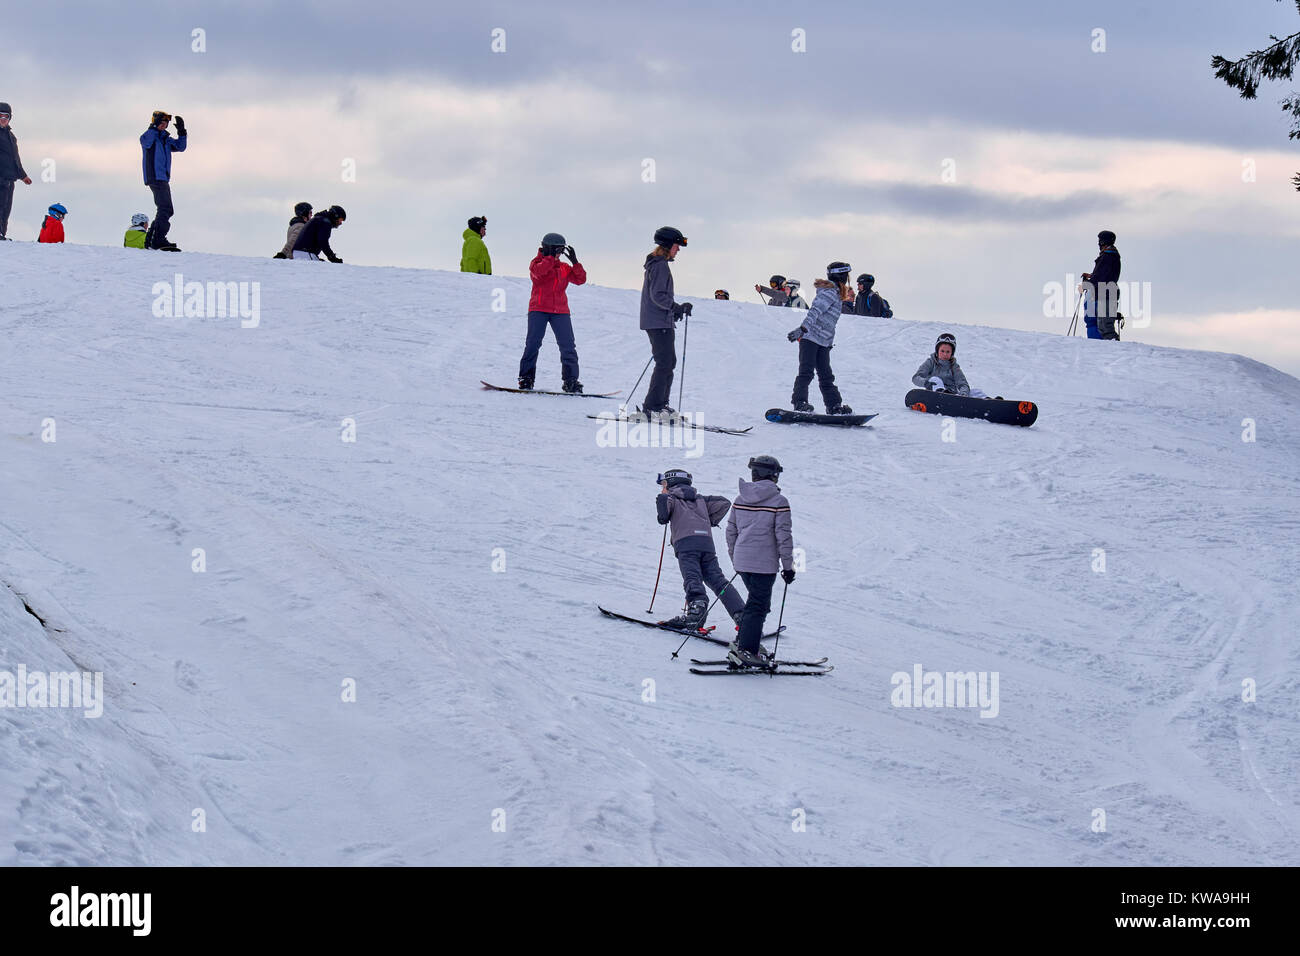 WINTERBERG, GERMANY - FEBRUARY 16, 2017: Many people on skis and snowboards on a mountain top at Ski Carousel Winterberg - Stock Image